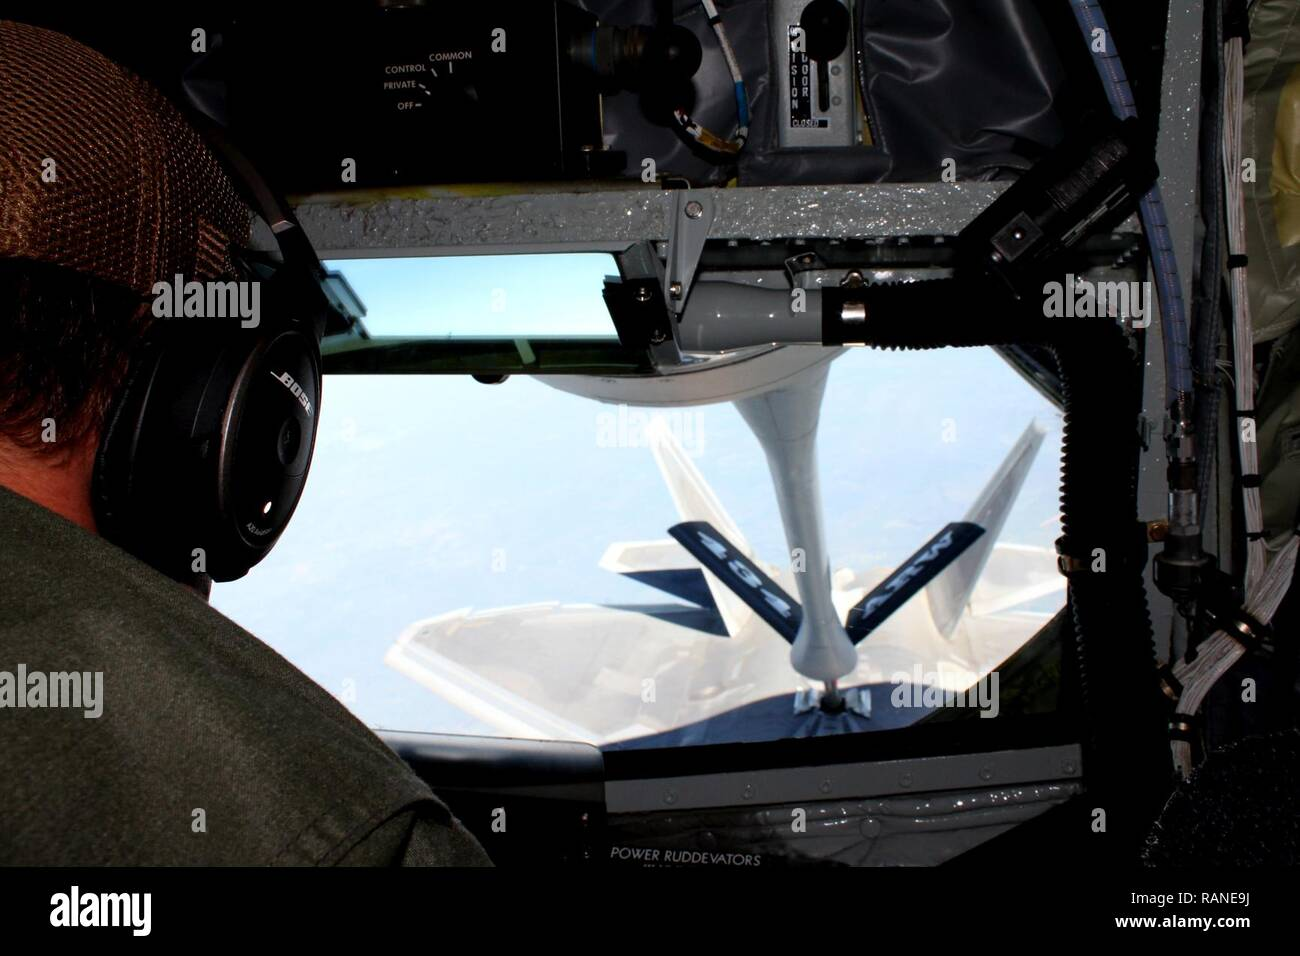 U.S. Air Force Master Sgt. Joshua Welch, 434th Air Refueling Wing boom operator, guides a U.S. Air Force KC-135 Stratotanker boom in place in order to refuel a U.S. Air Force F-22 Raptor above Royal Australian Air Force Base Tindal, Australia, March 2, 2017. Twelve F-22's and approximately 200 U.S. Air Force Airmen participated in the first Enhanced Air Cooperation, an initiative under the Force Posture Agreement between the U.S. and Australia. - Stock Image